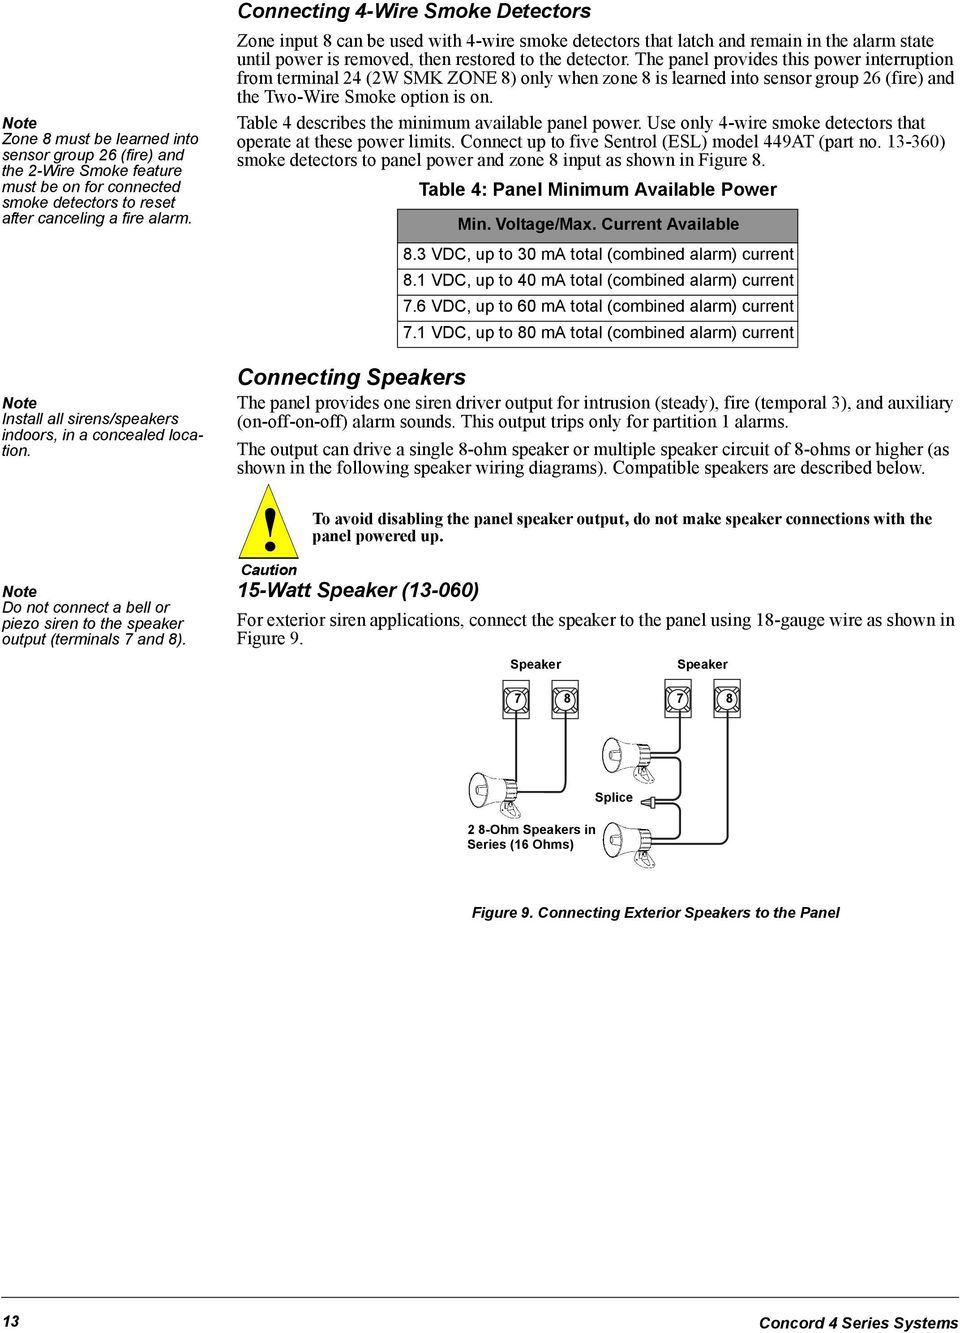 Concord 4 Series Security Systems Pdf Speaker Wiring Connecting Wire Smoke Detectors Zone Input 8 Can Be Used With